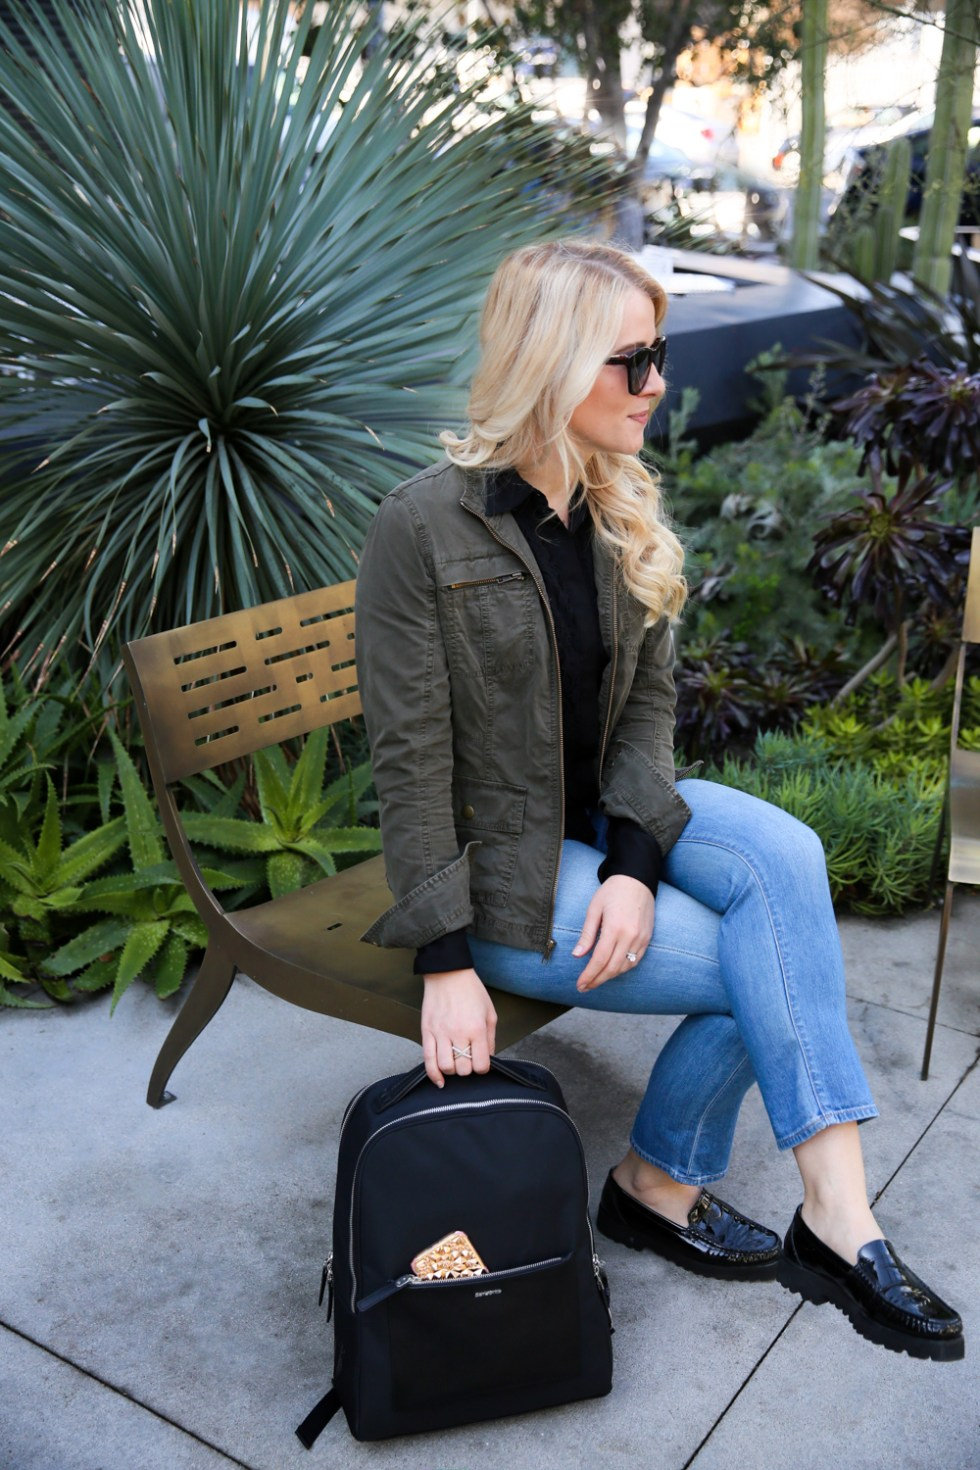 Backpack Outfits for Stylish Women - Cropped jeans + Loafers